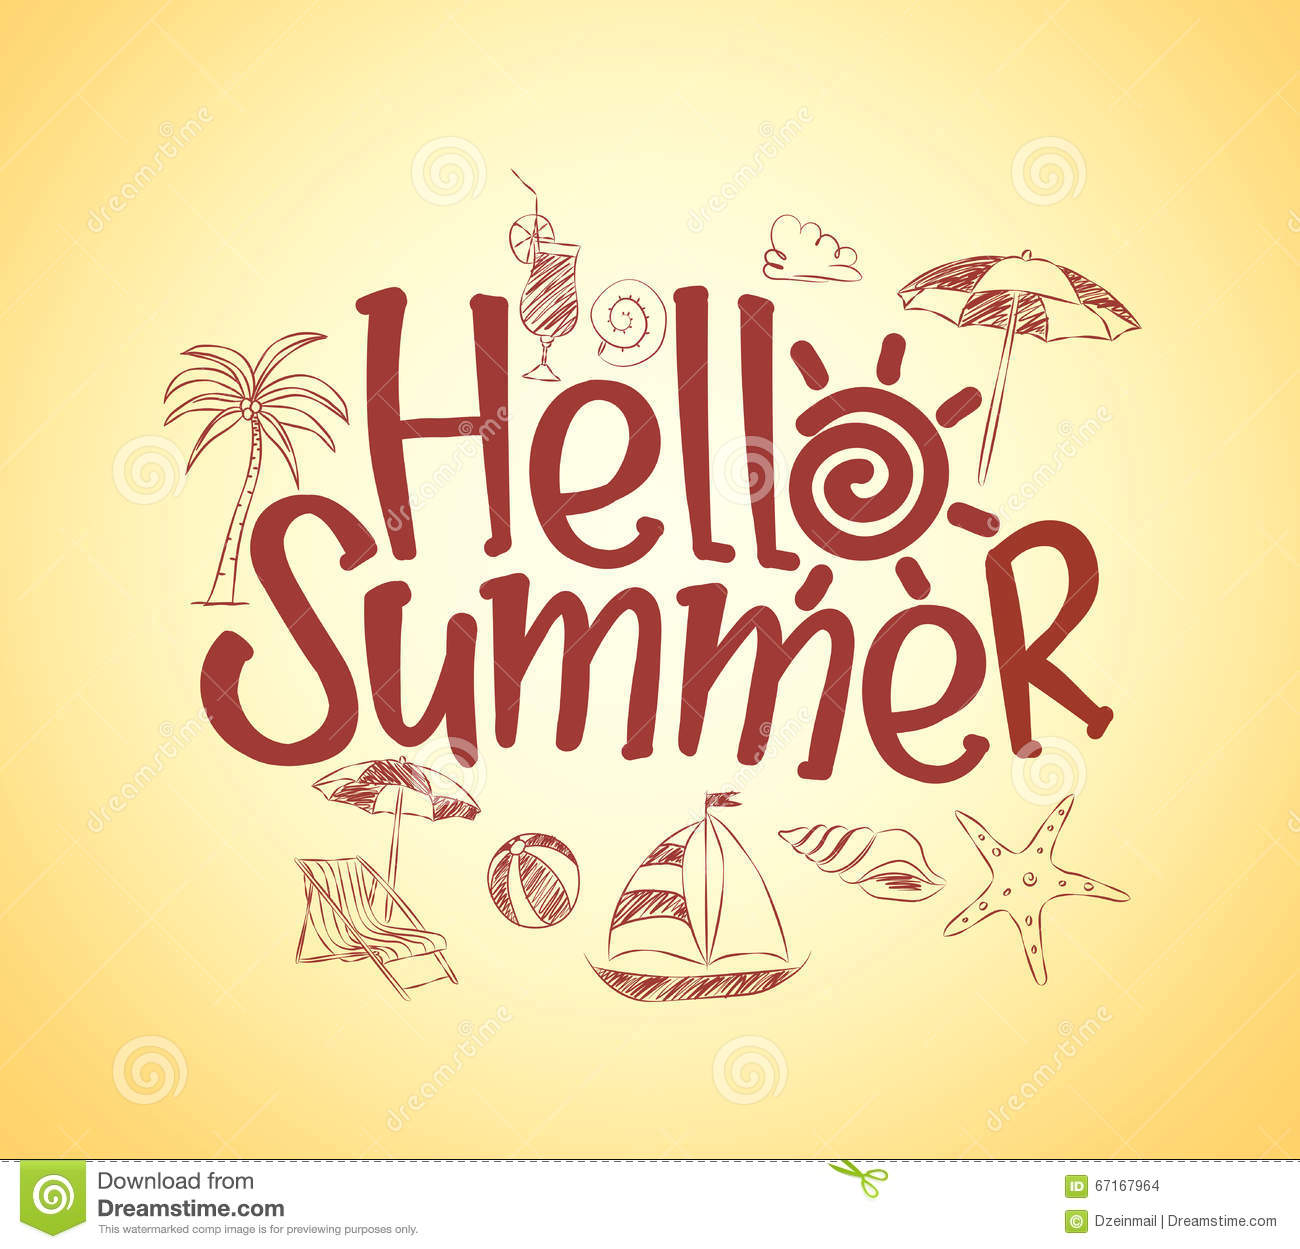 Poster design drawing - Simple Hello Summer Poster Design With Hand Drawing Vector Stock Vector